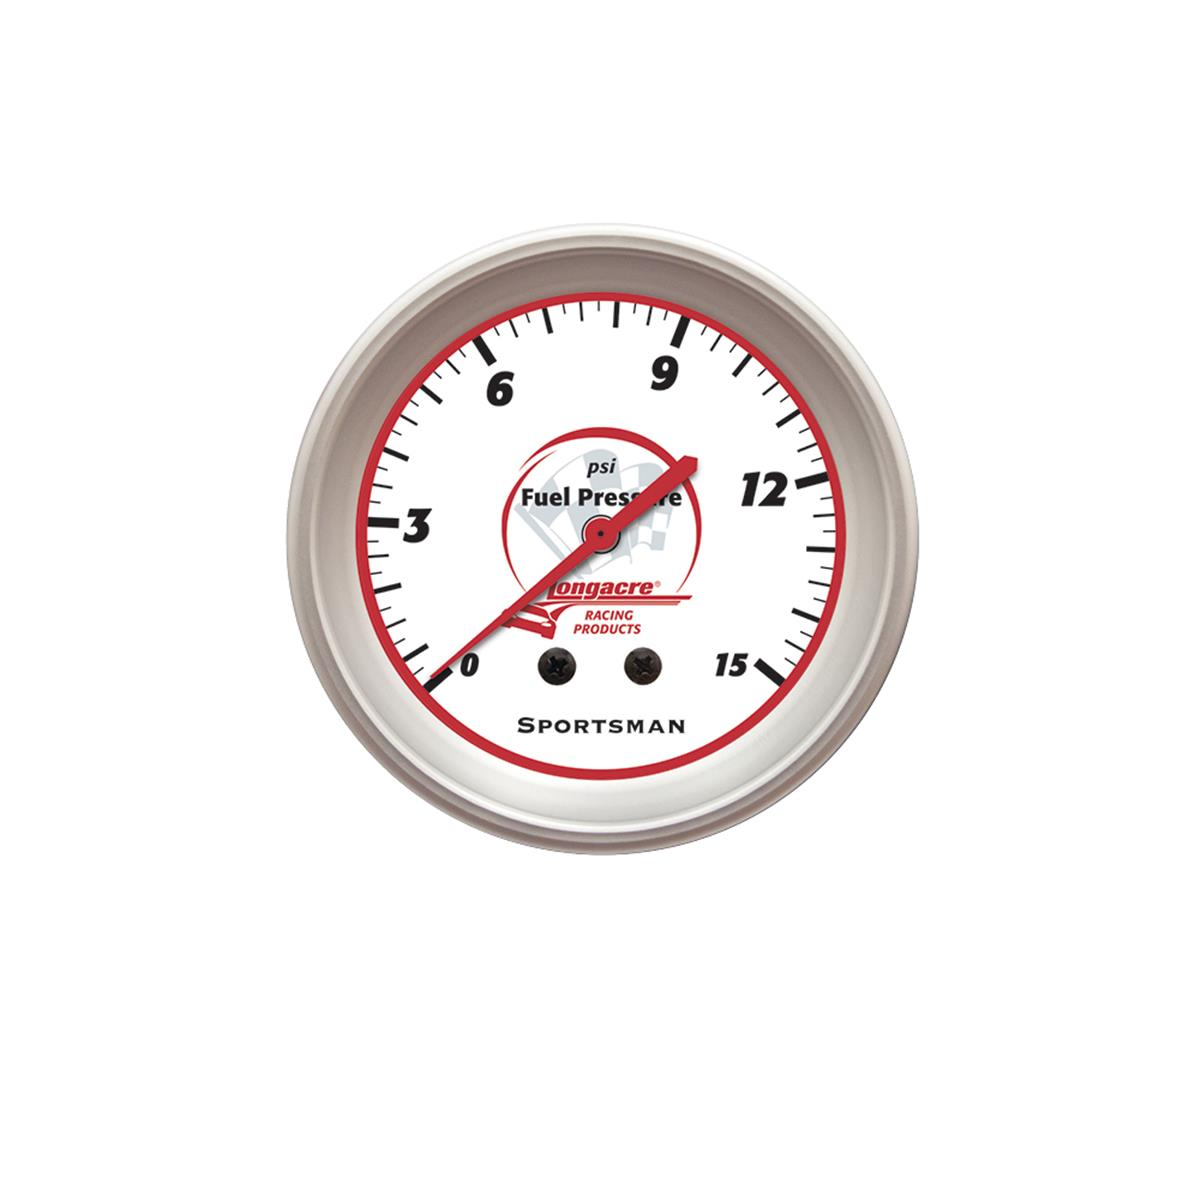 Sportsman™ Fuel Pressure Gauge 0-15 psi